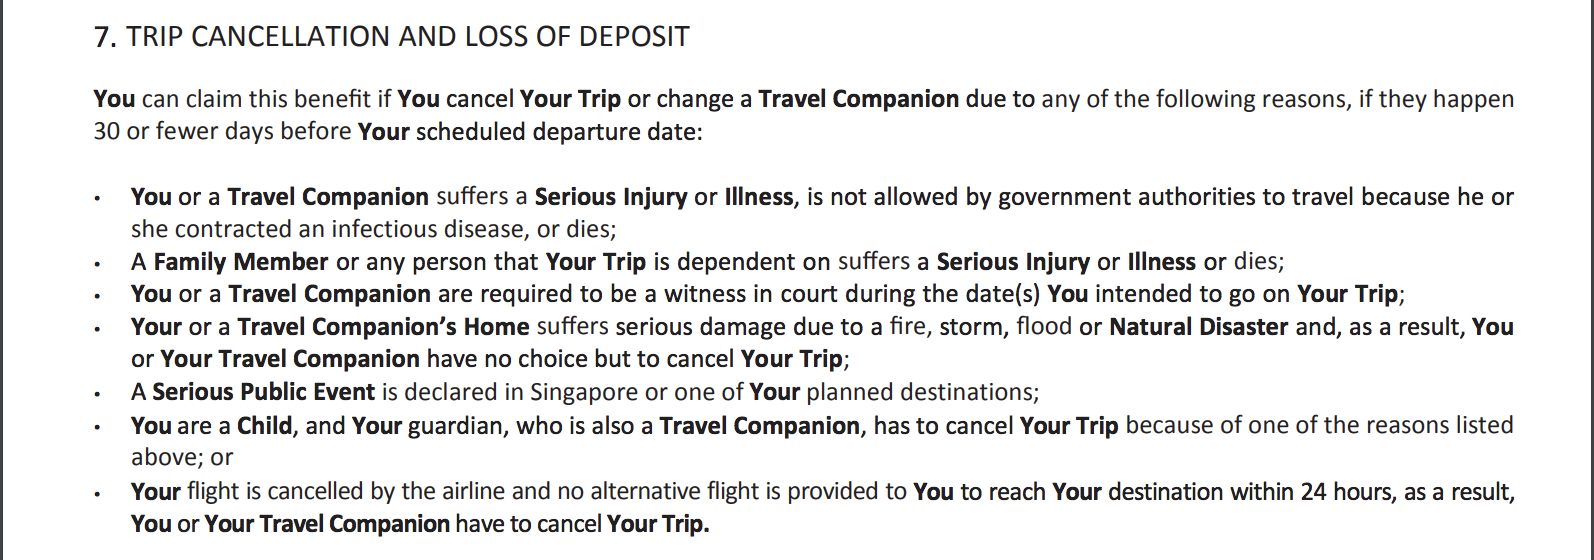 FWD's policy wording shows that it covers cancellations in the event of unforeseen civil unrest at your destination country